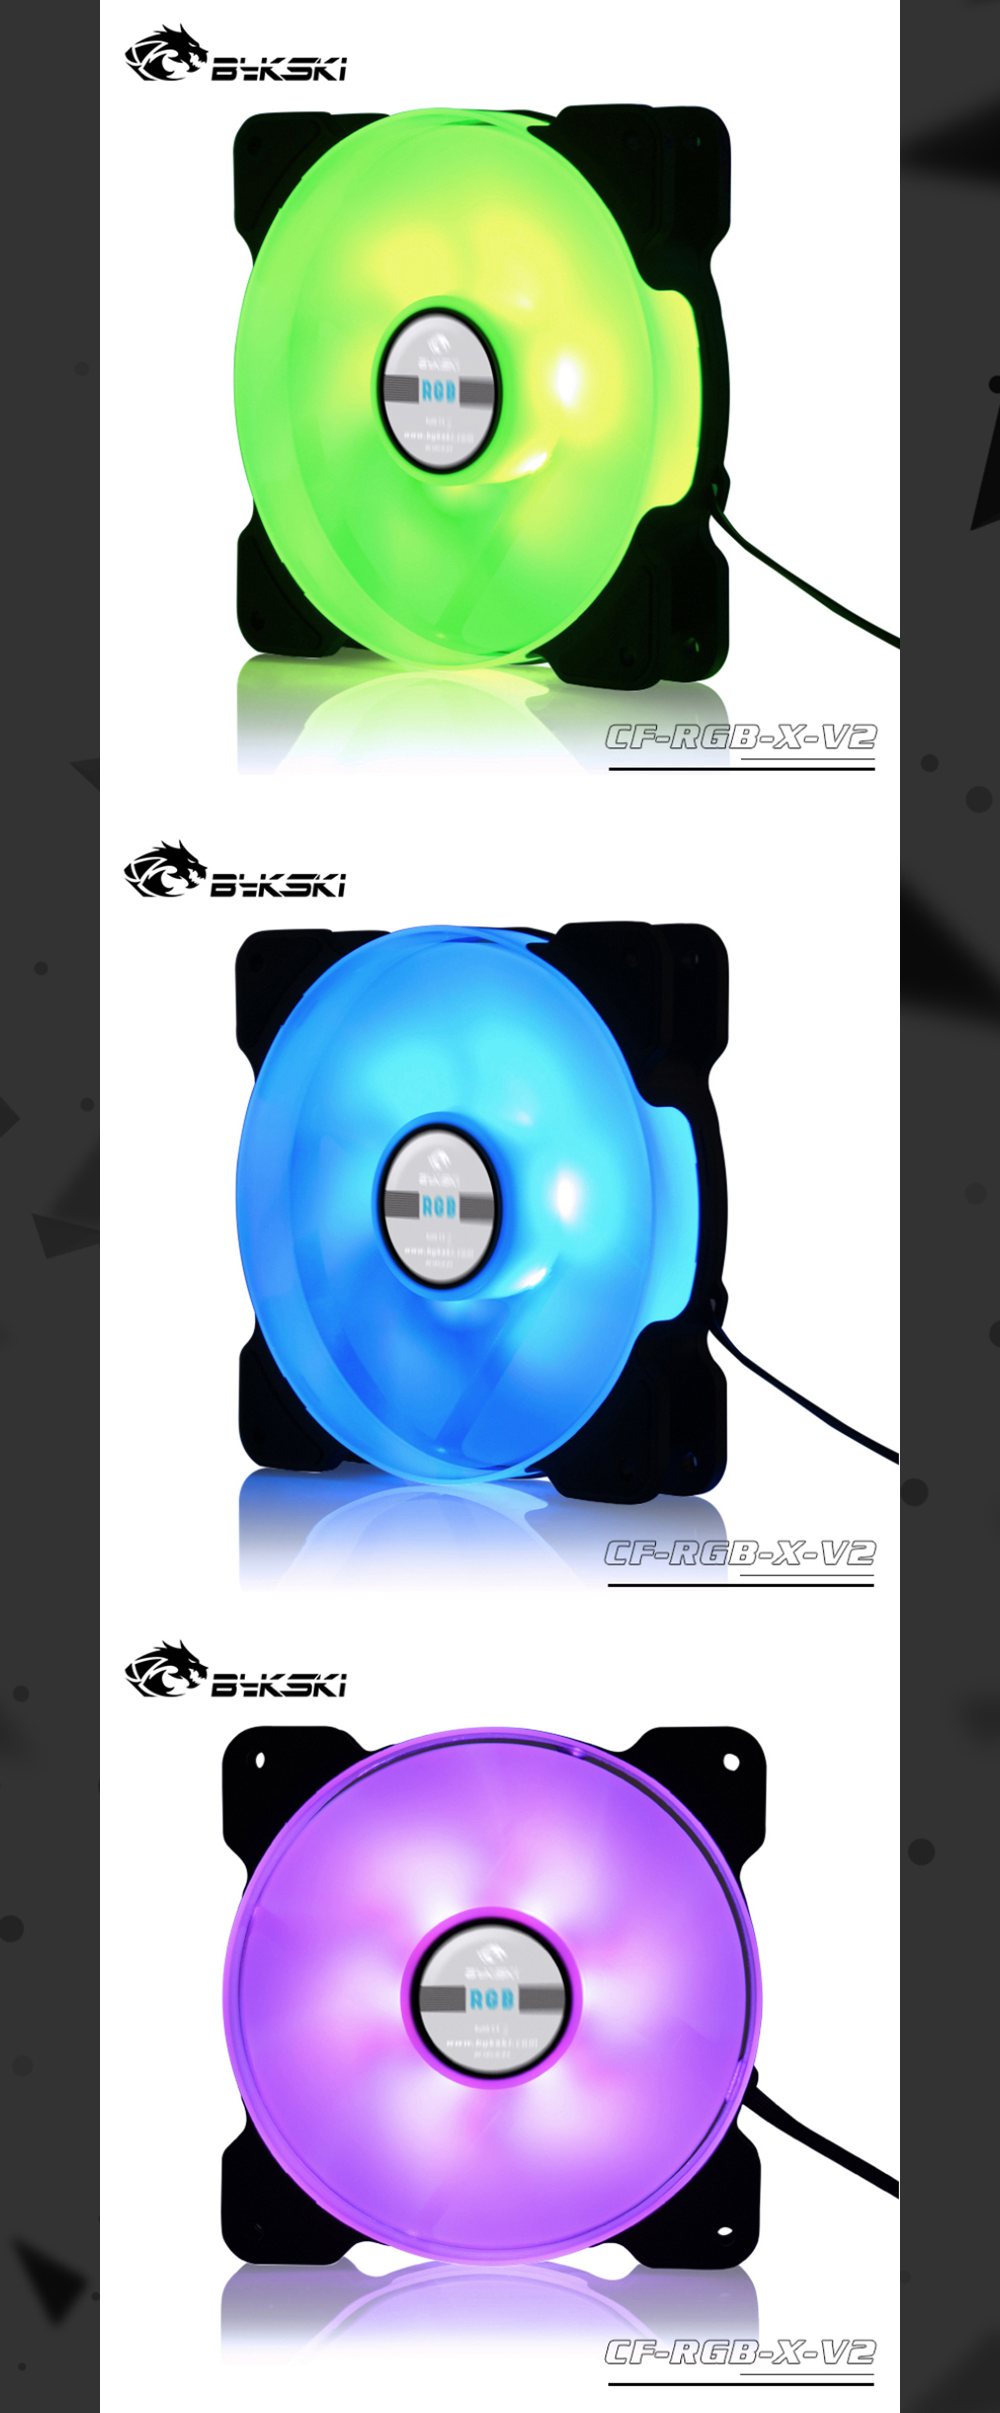 Bykski Fan / Cooler 120mm Constant Cooling, Rgb 12v 4pin, Compatible With 120 / 240 / 360 / 480 mm Radiators, Water Cooling Fans, CF-RGB-X-V2